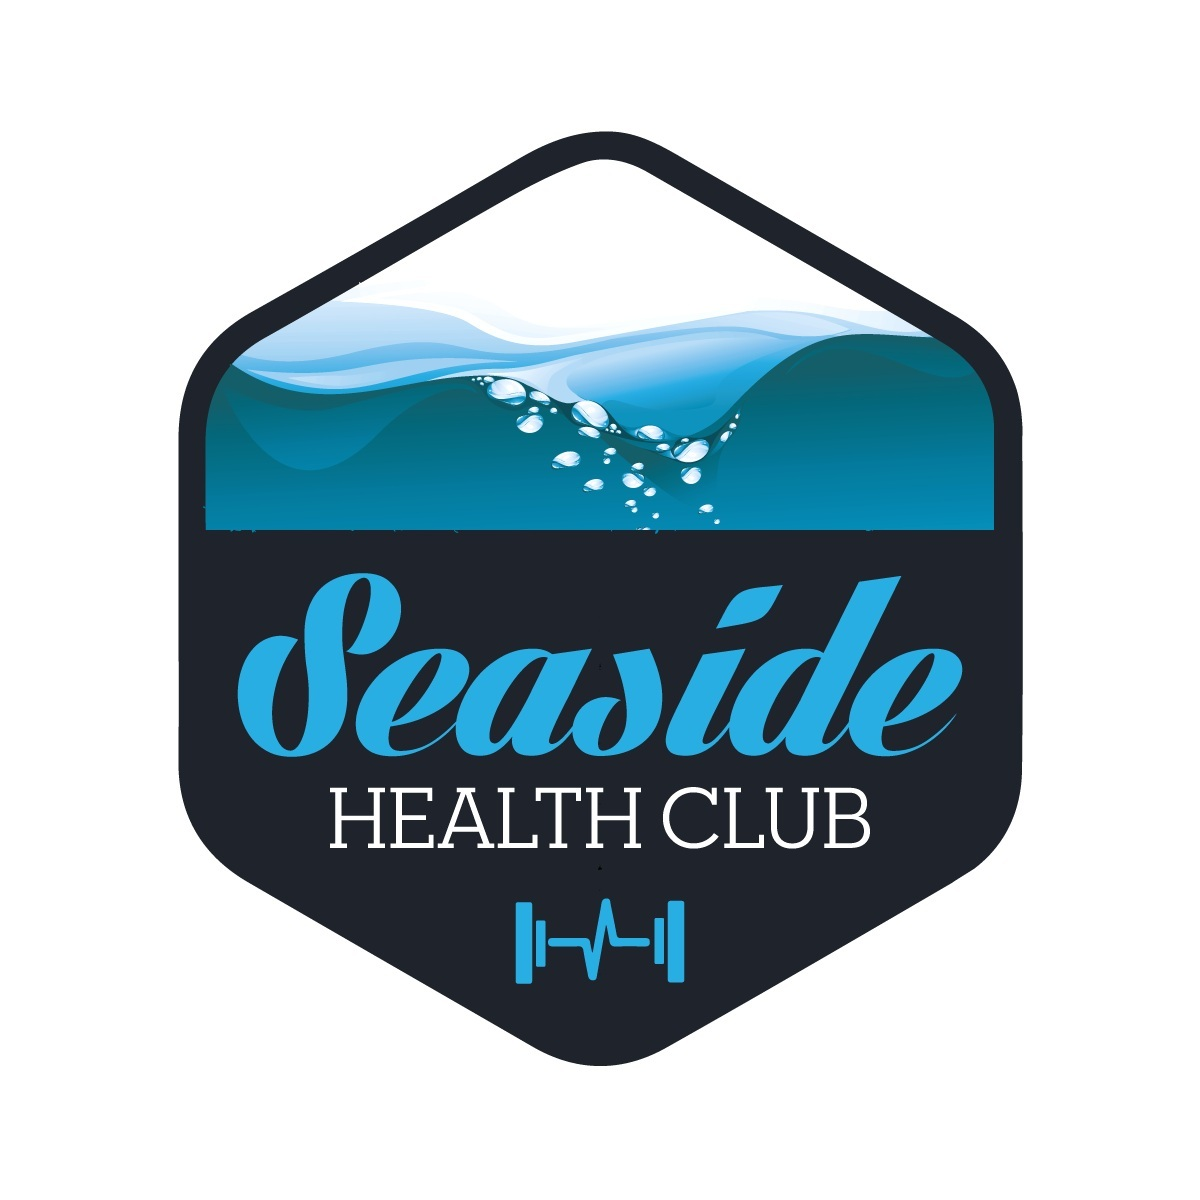 Seaside Health Club